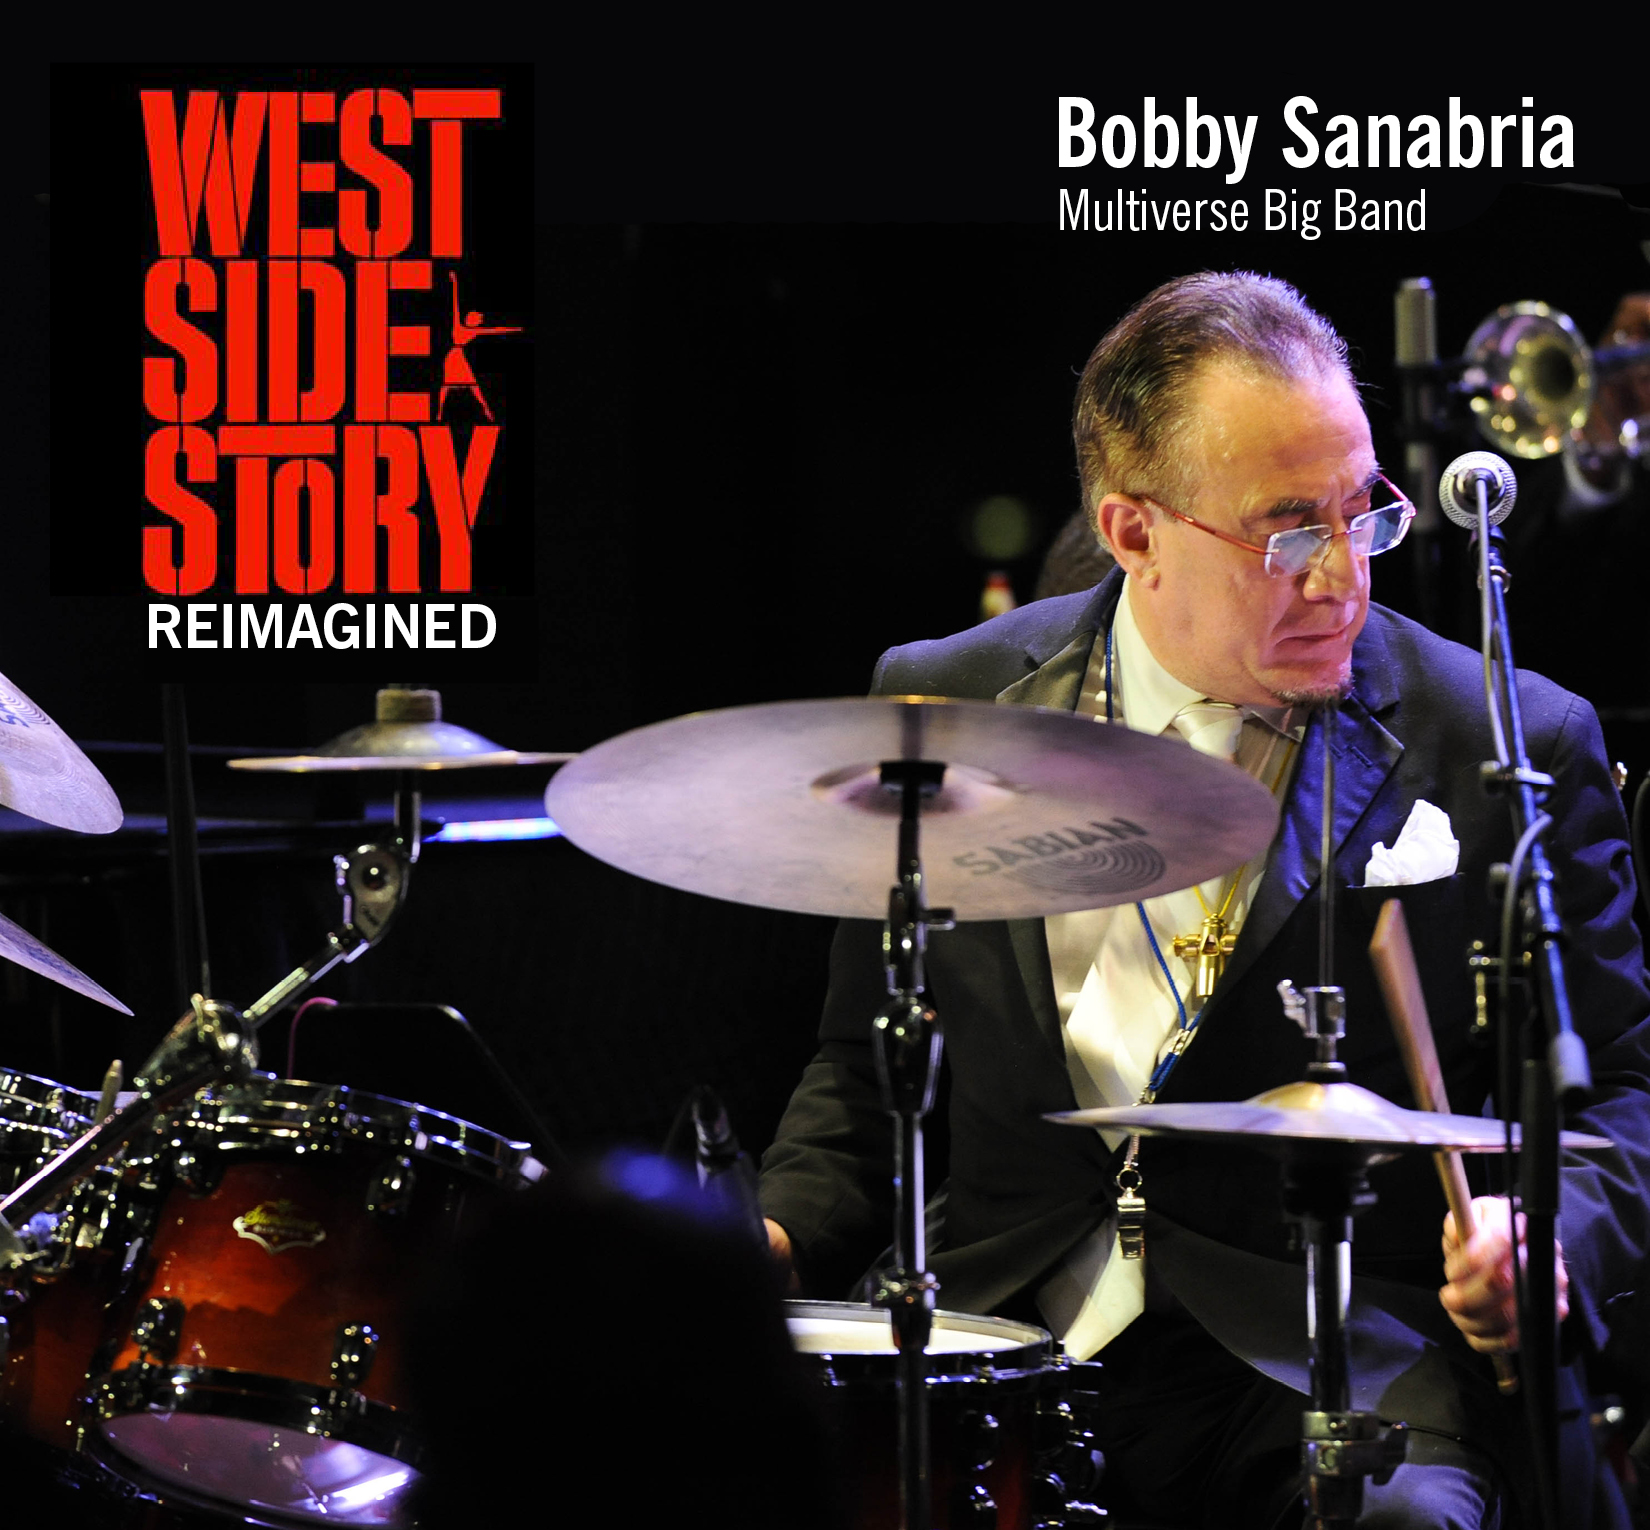 The Jazz Journalists Association has announced the 2019 JJA Award for Record of the Year is West Side Story Reimagined